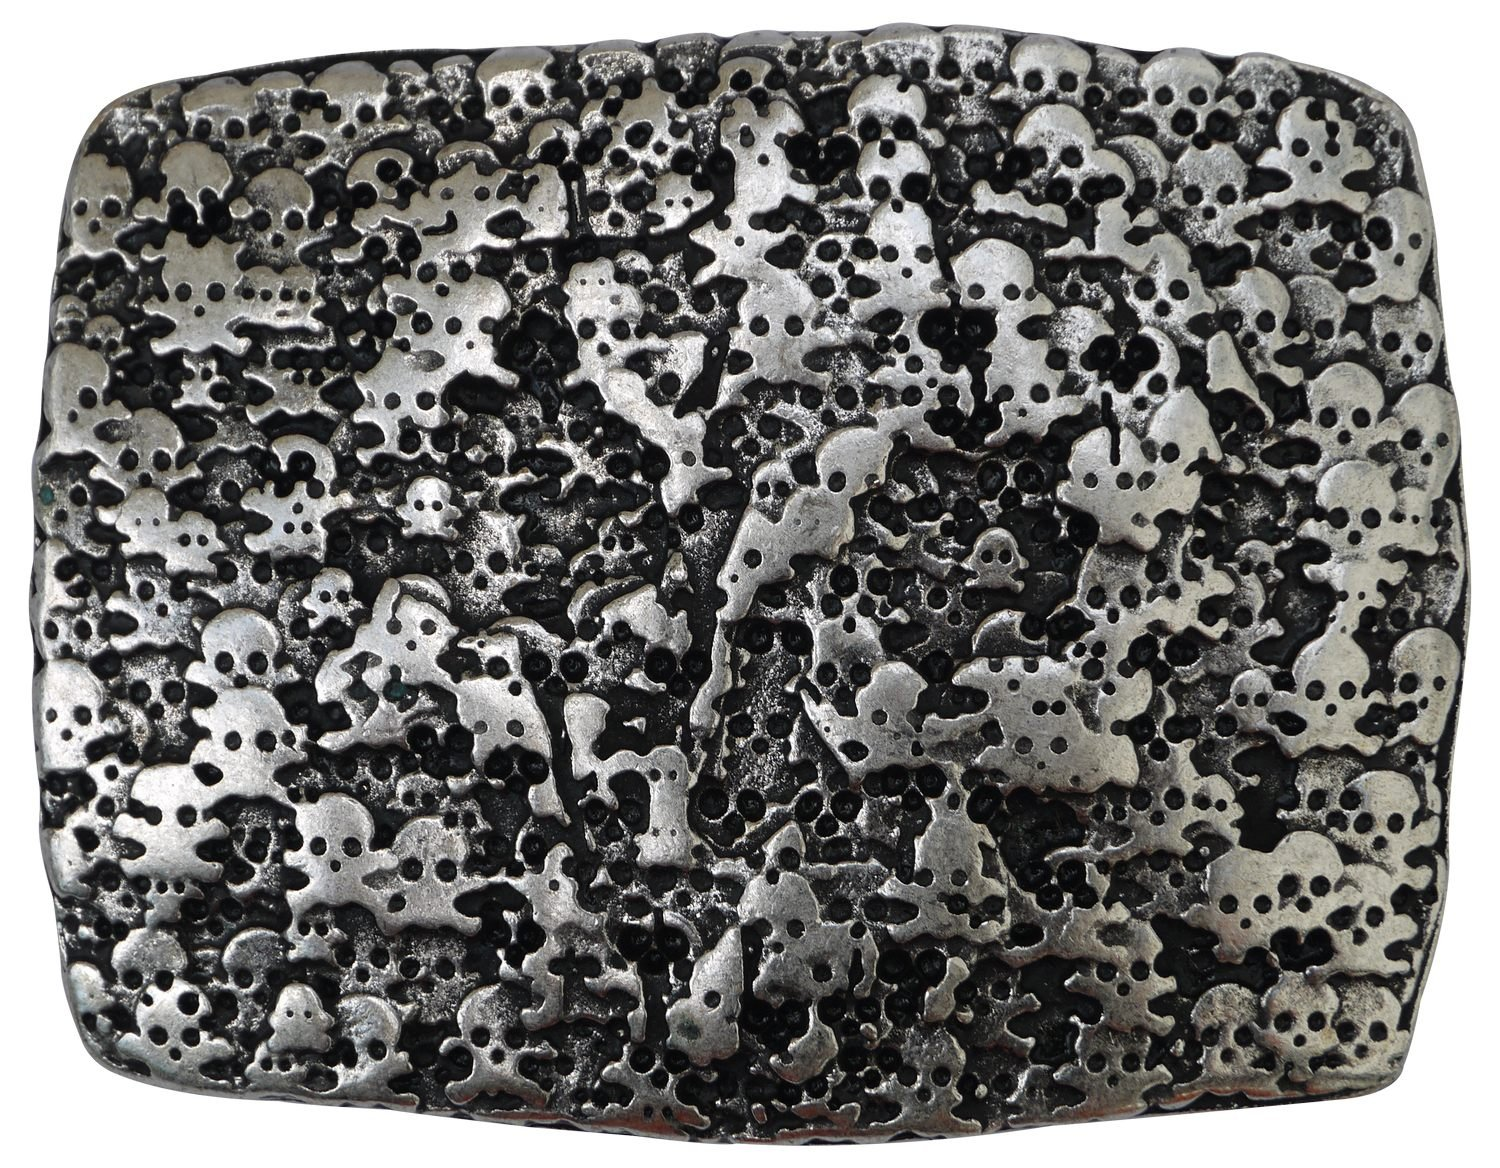 FRONHOFER Large antique silver belt buckle with little skulls, unisex 1.5'/4cm, Color:Silver color, Size:One Size unisex 1.5'/4cm